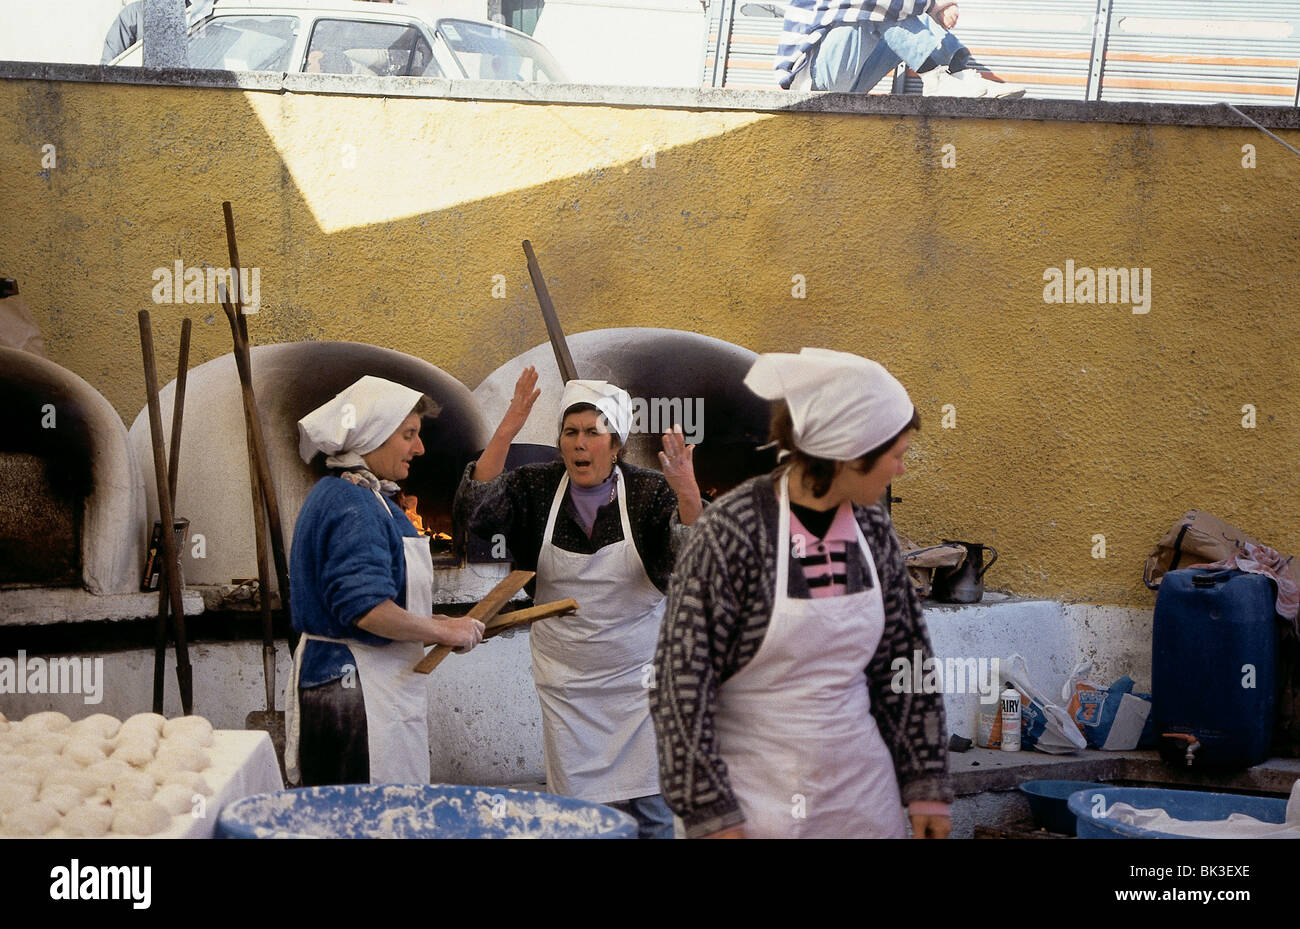 Outdoor bakery, Portugal - Stock Image